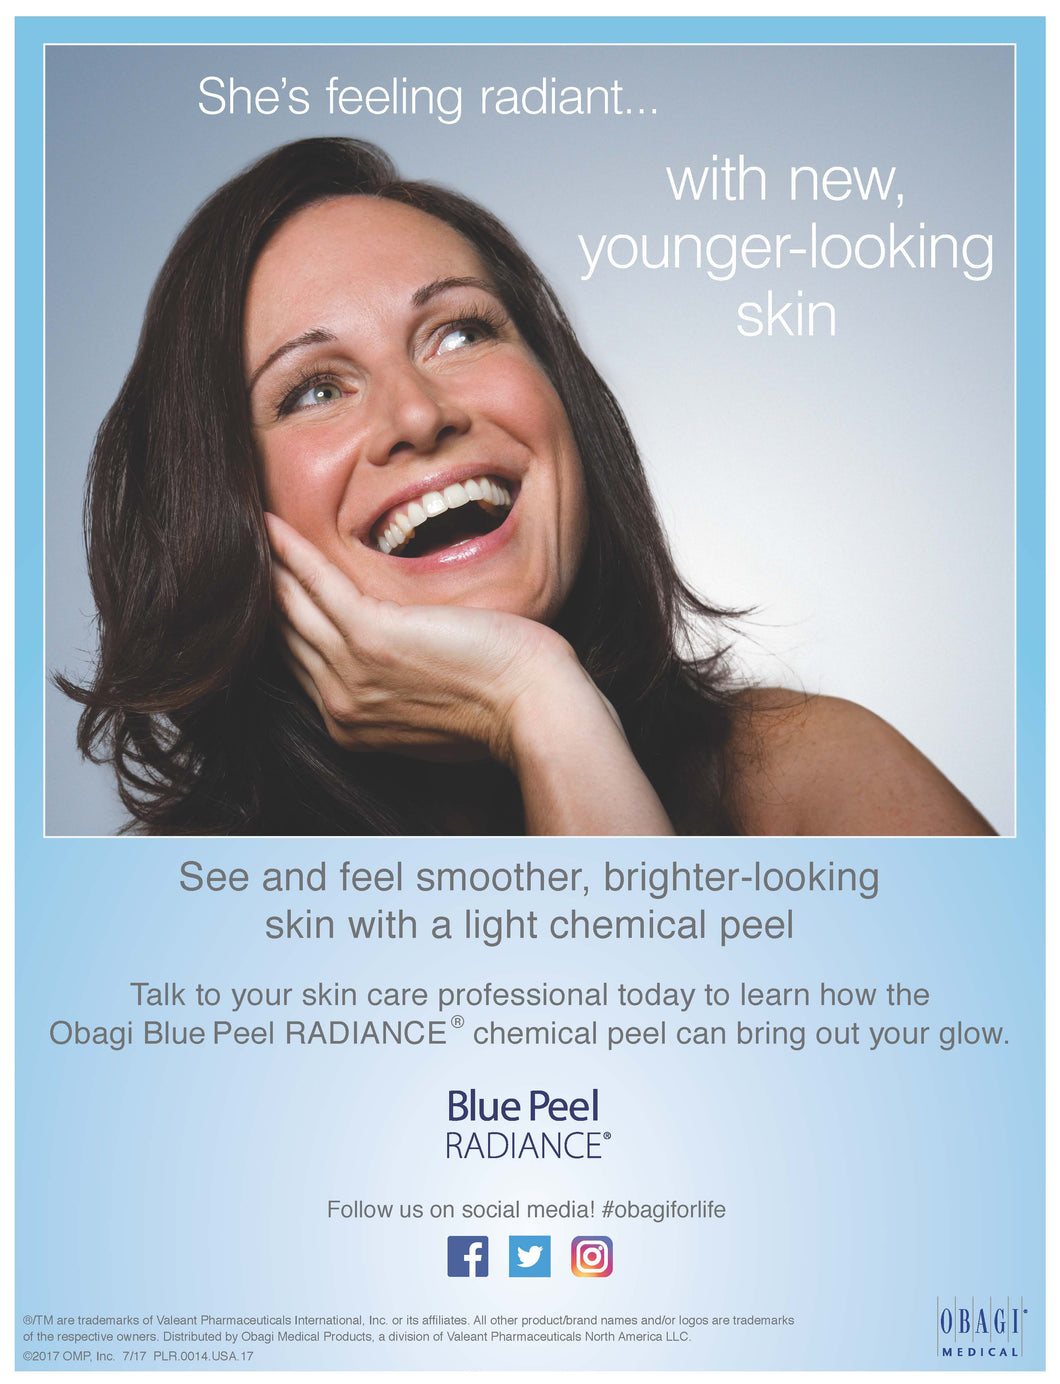 Brighten and Relax Package - Buy Botox and Get a Free Obagi Radiance Peel - Value $160